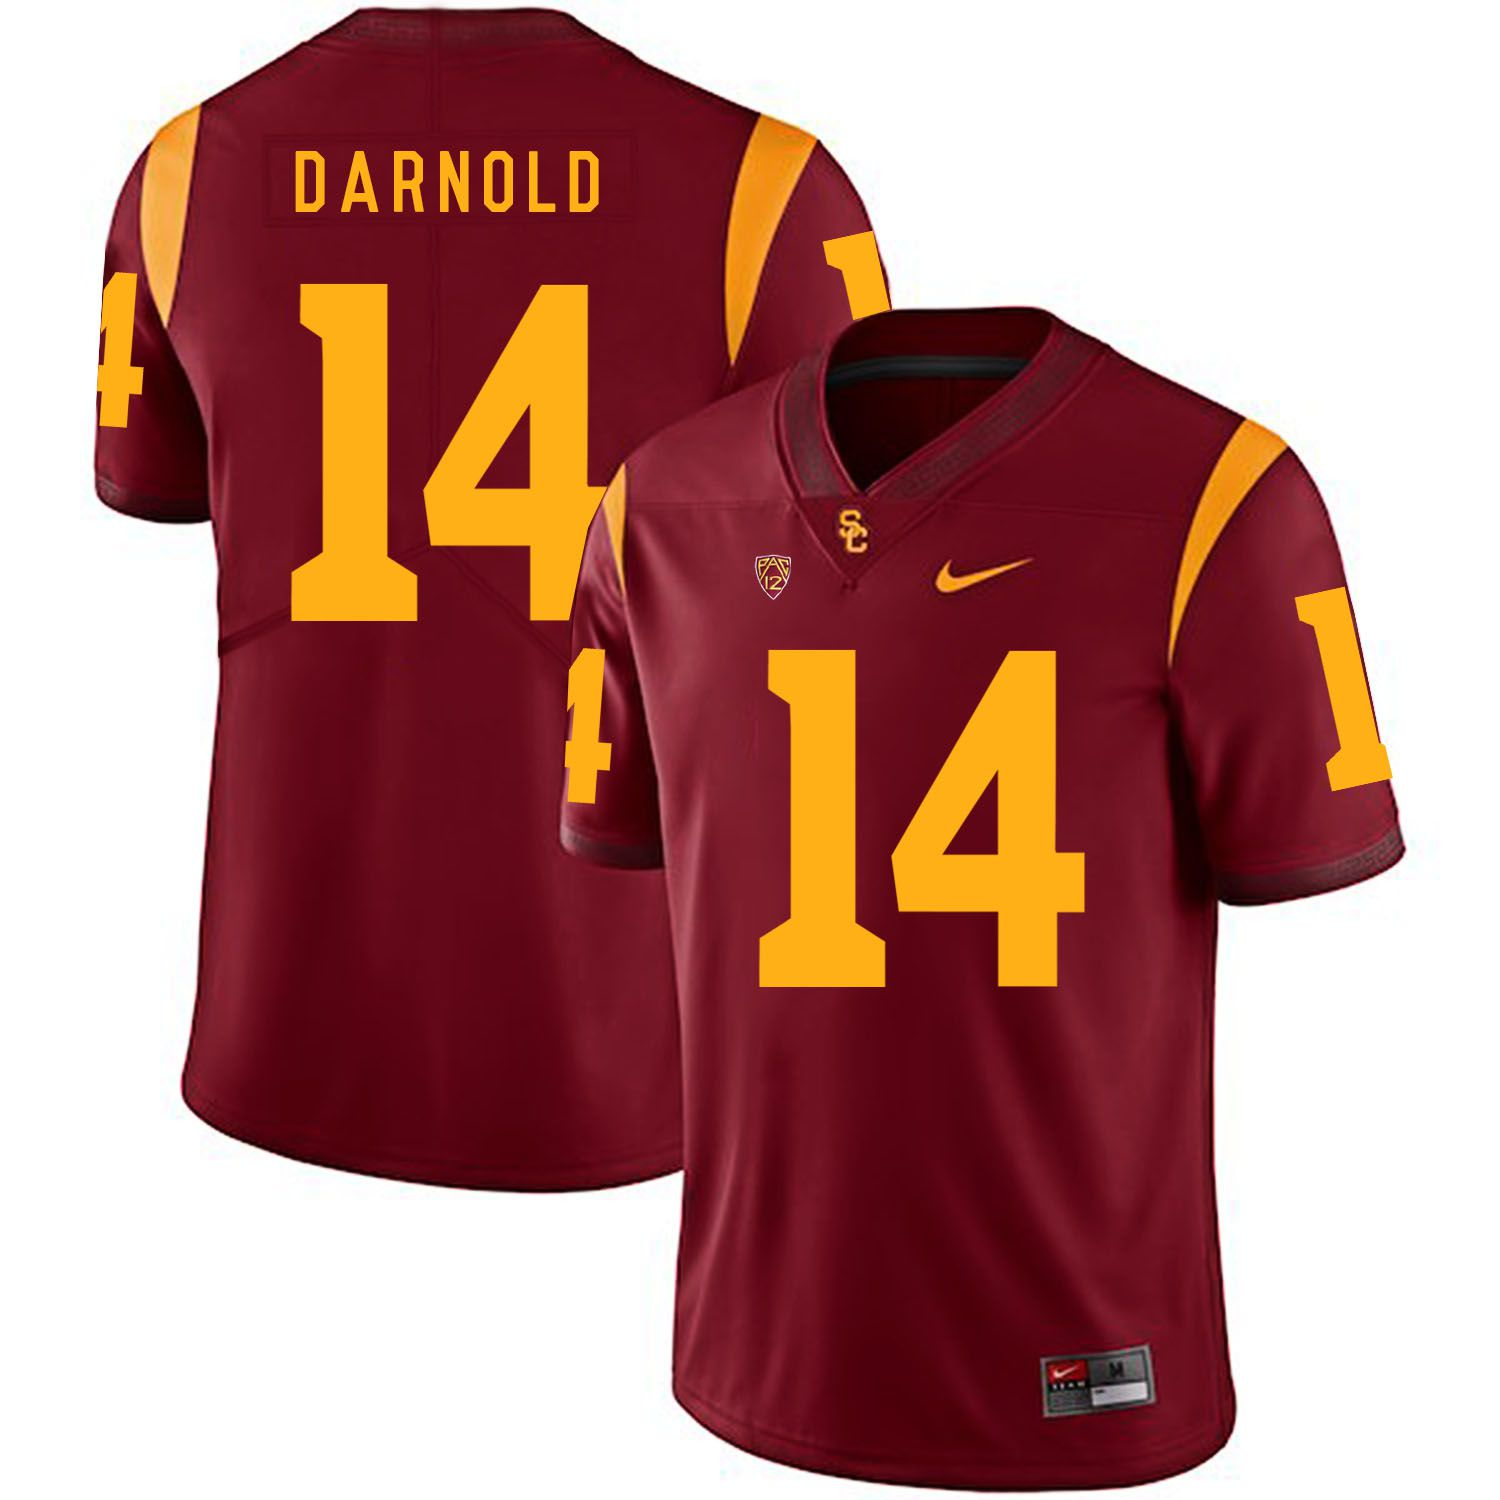 Men USC Trojans 14 Darnold Red Customized NCAA Jerseys